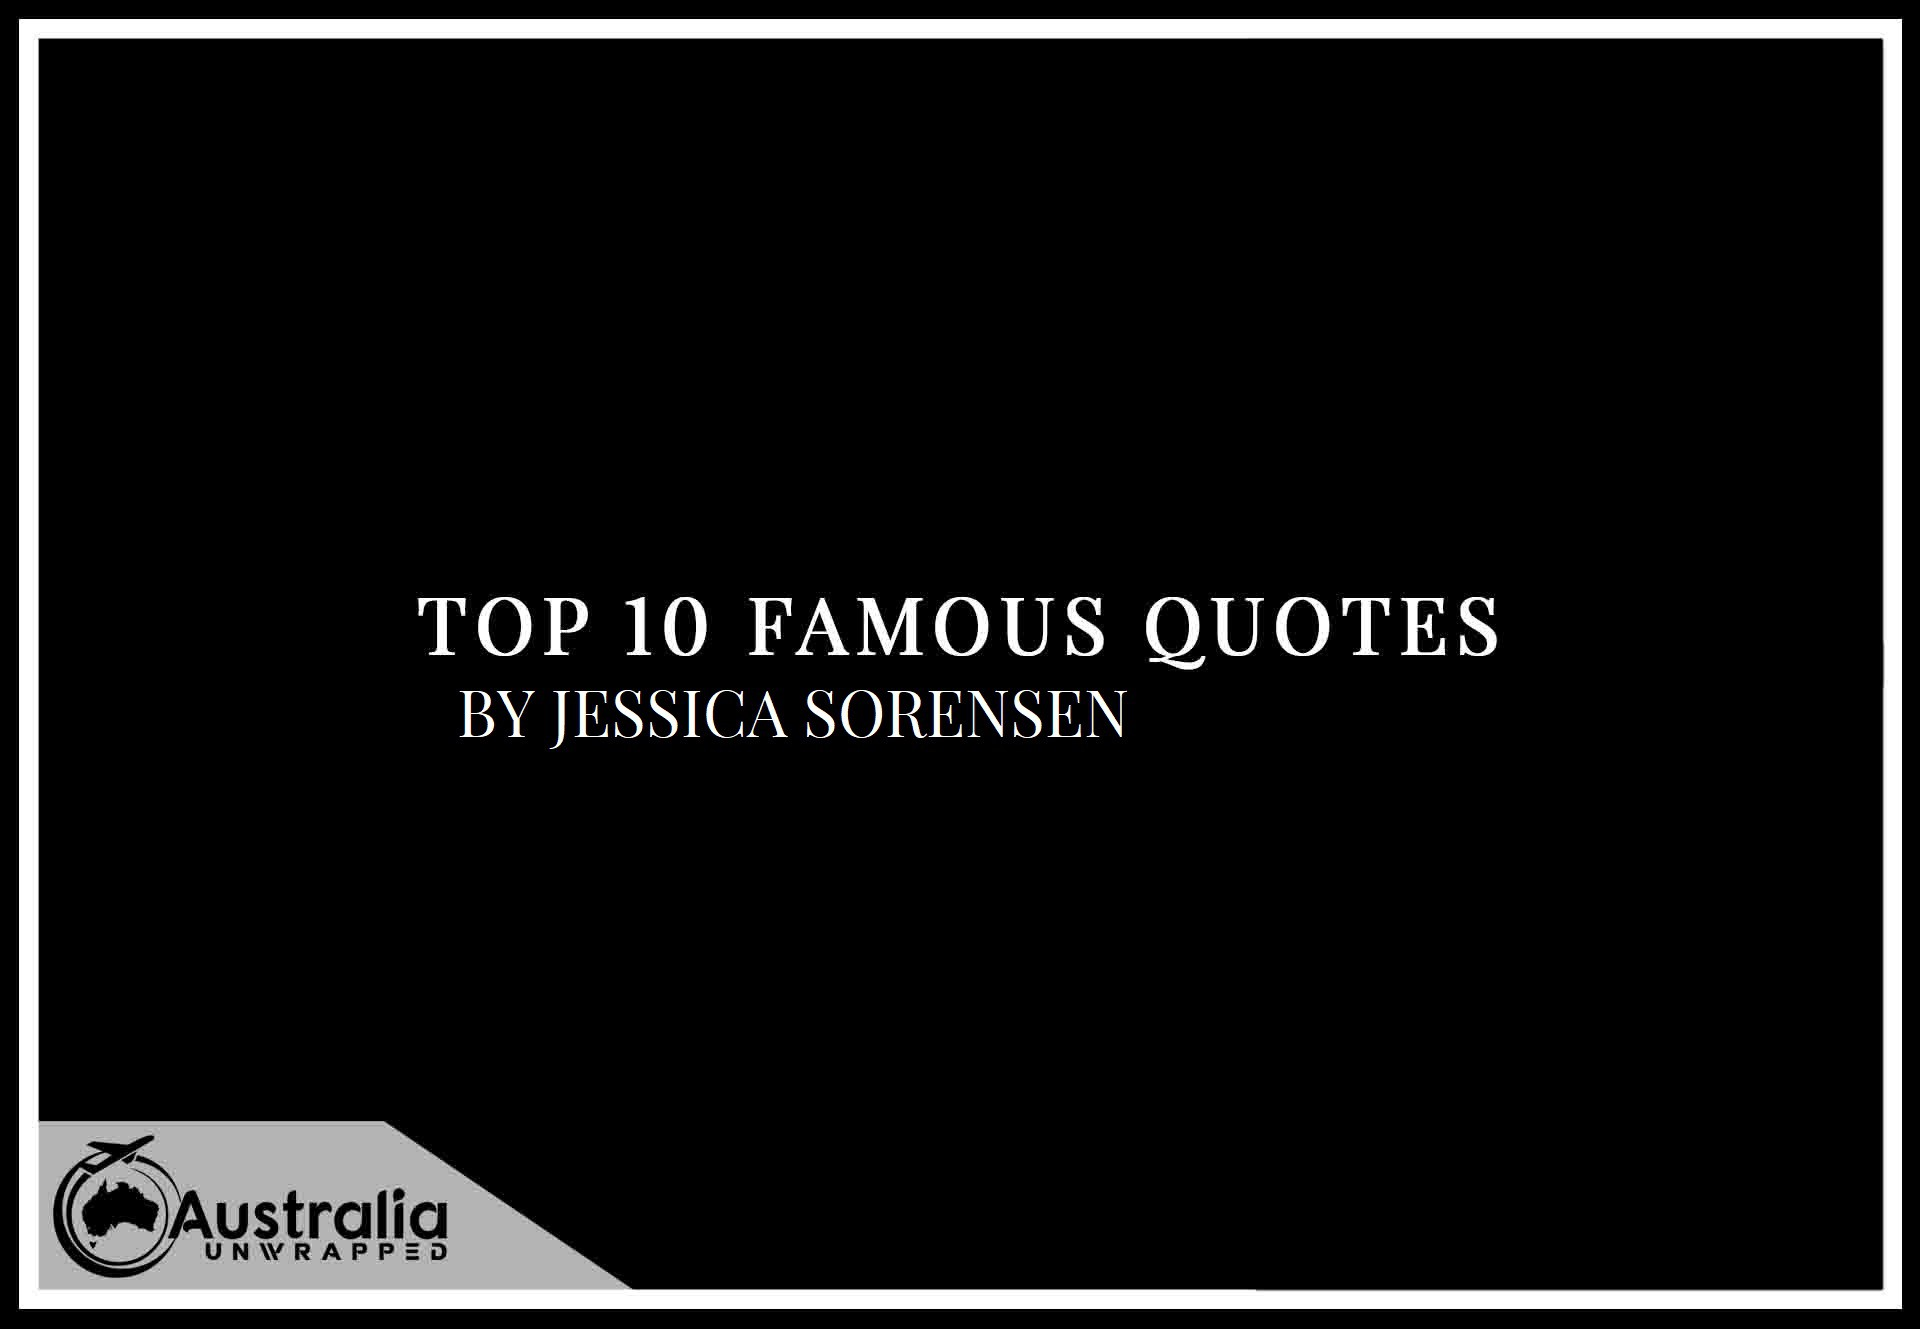 Top 10 Famous Quotes by Author Jessica Sorensen